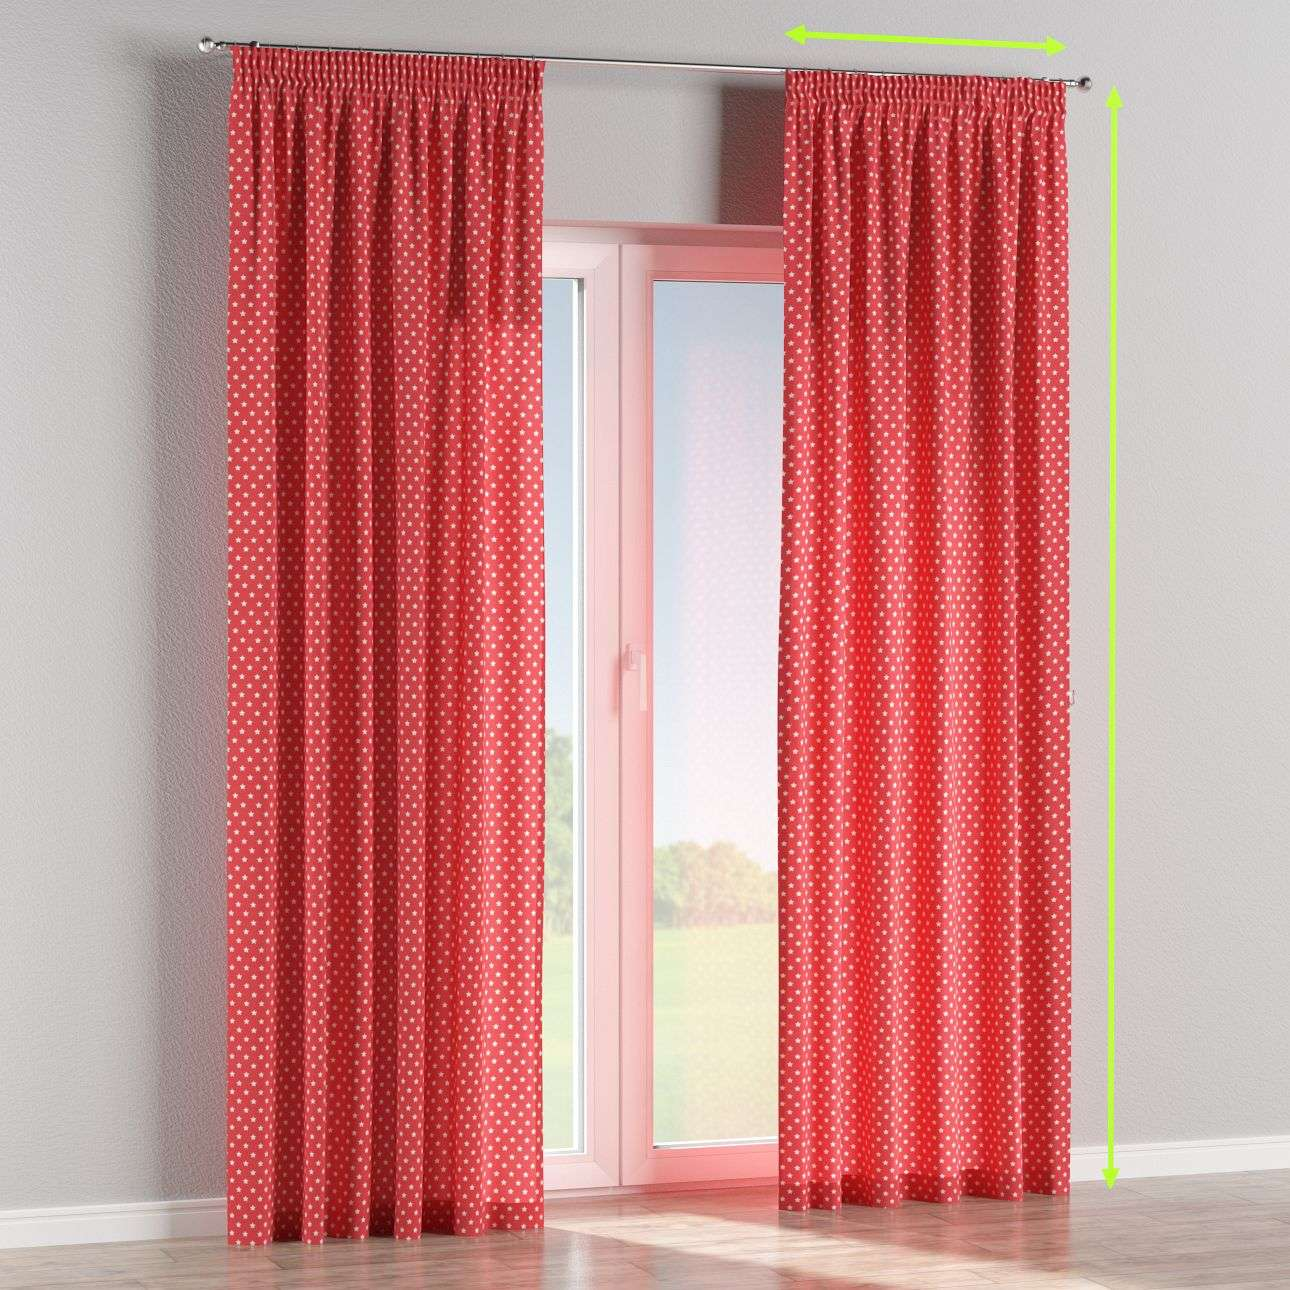 Pencil pleat curtain in collection Little World, fabric: 137-69